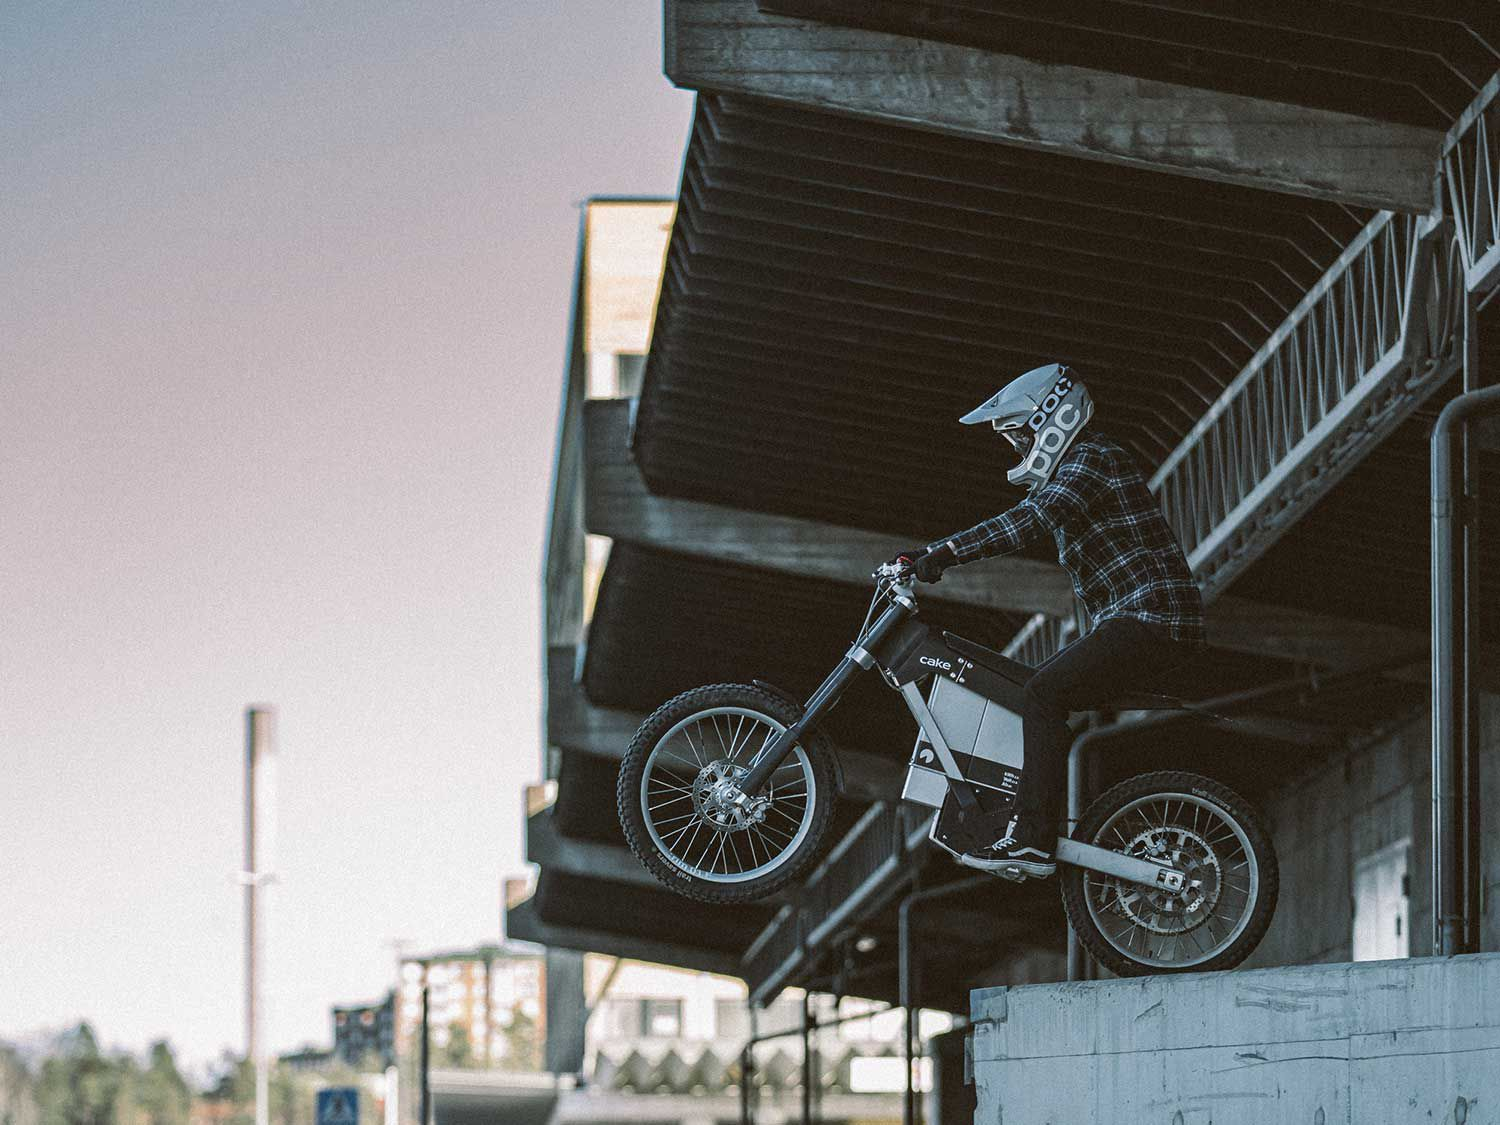 The INK's 6061 aluminum frame and swingarm are the same as the Kalk OR.